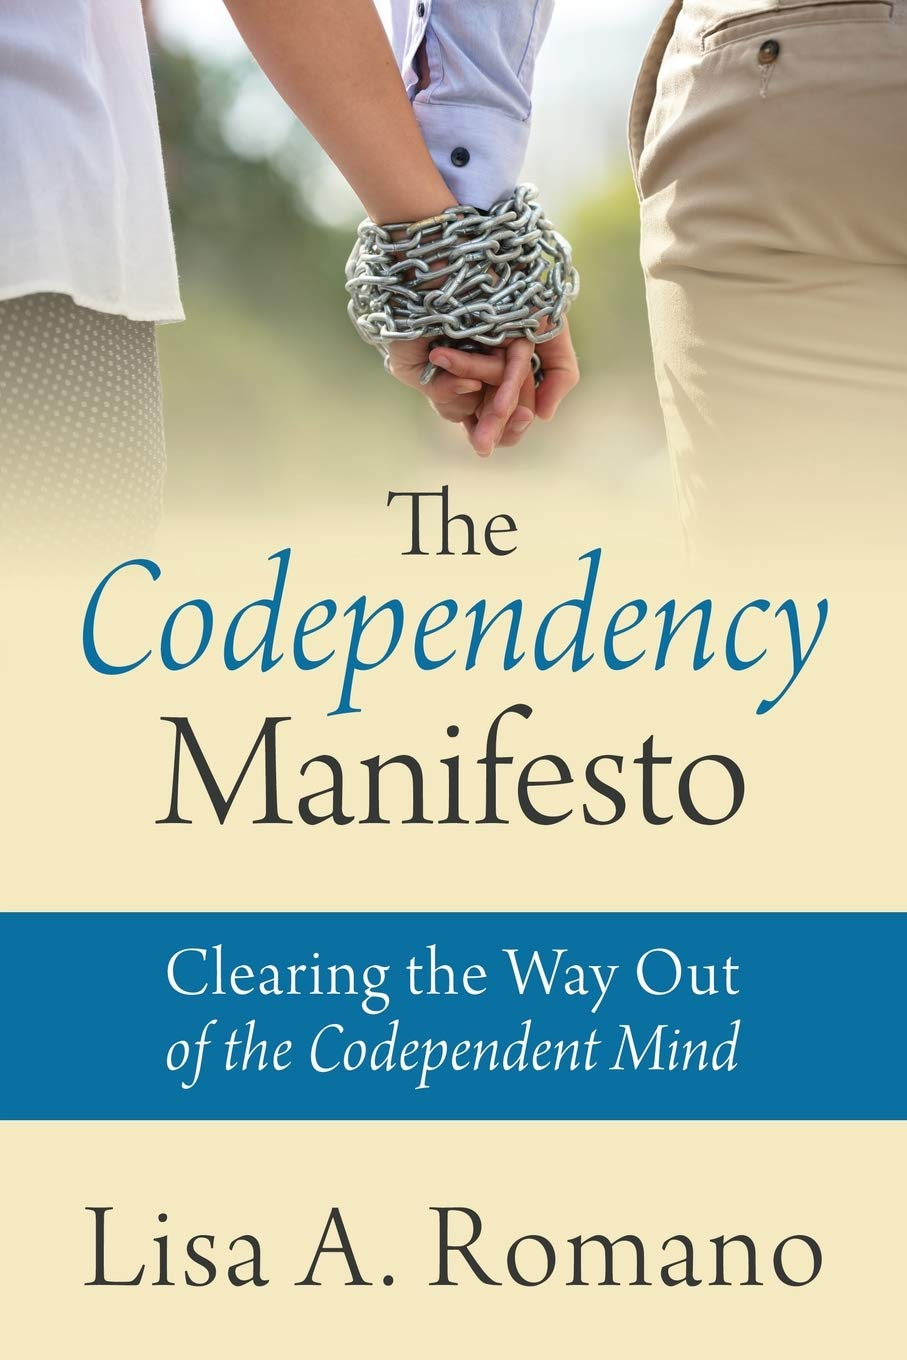 Image OfThe Codependency Manifesto: Clearing The Way Out Of The Codependent Mind